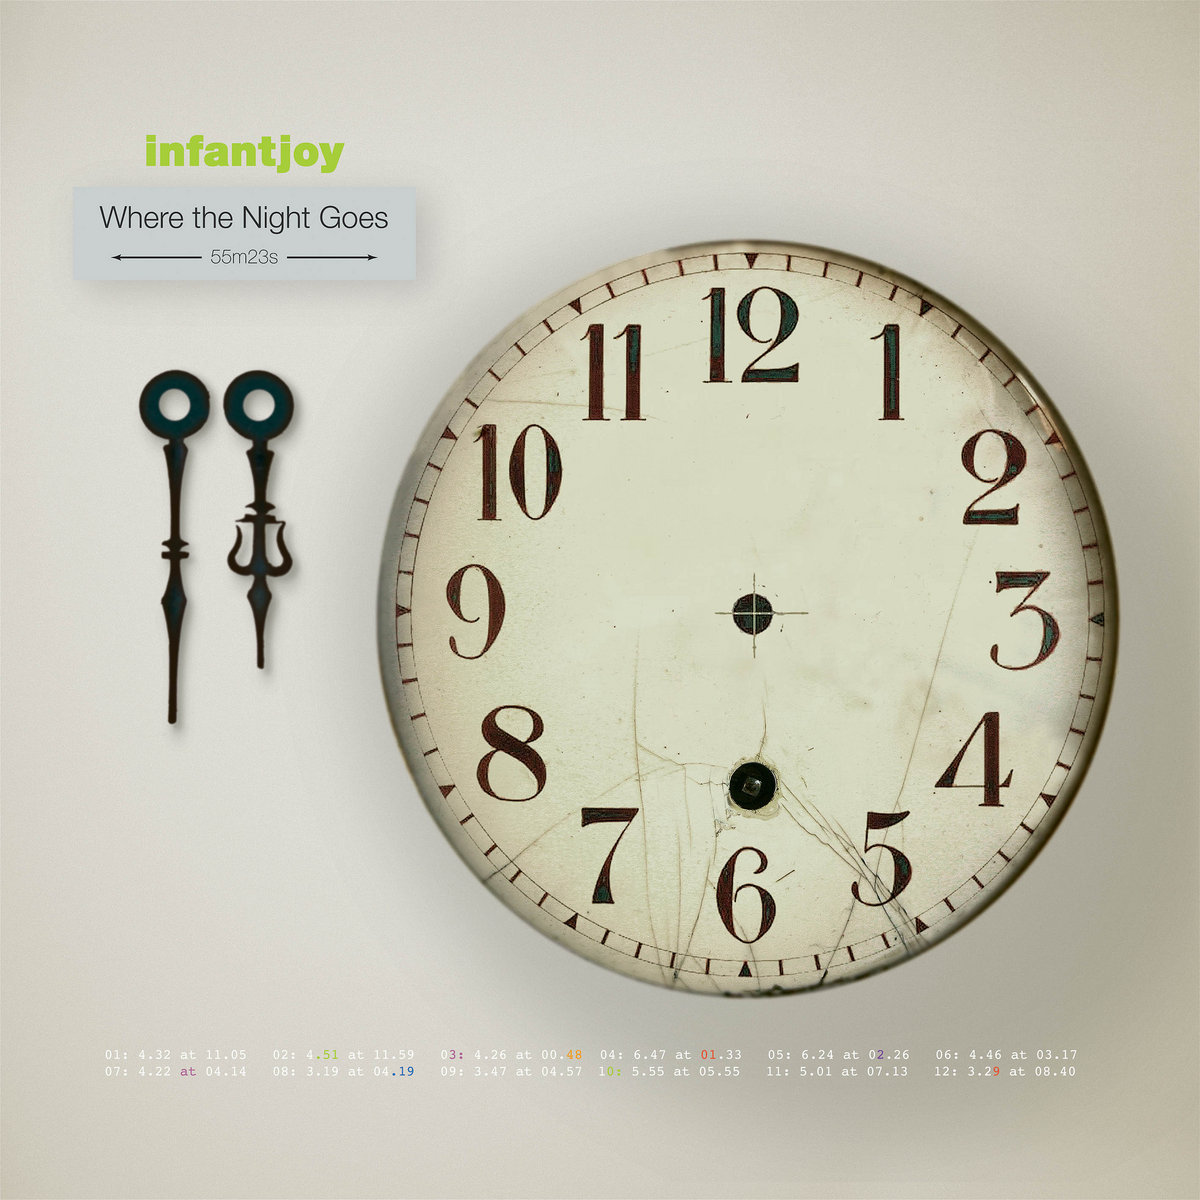 Where The Night Goes - Infantjoy